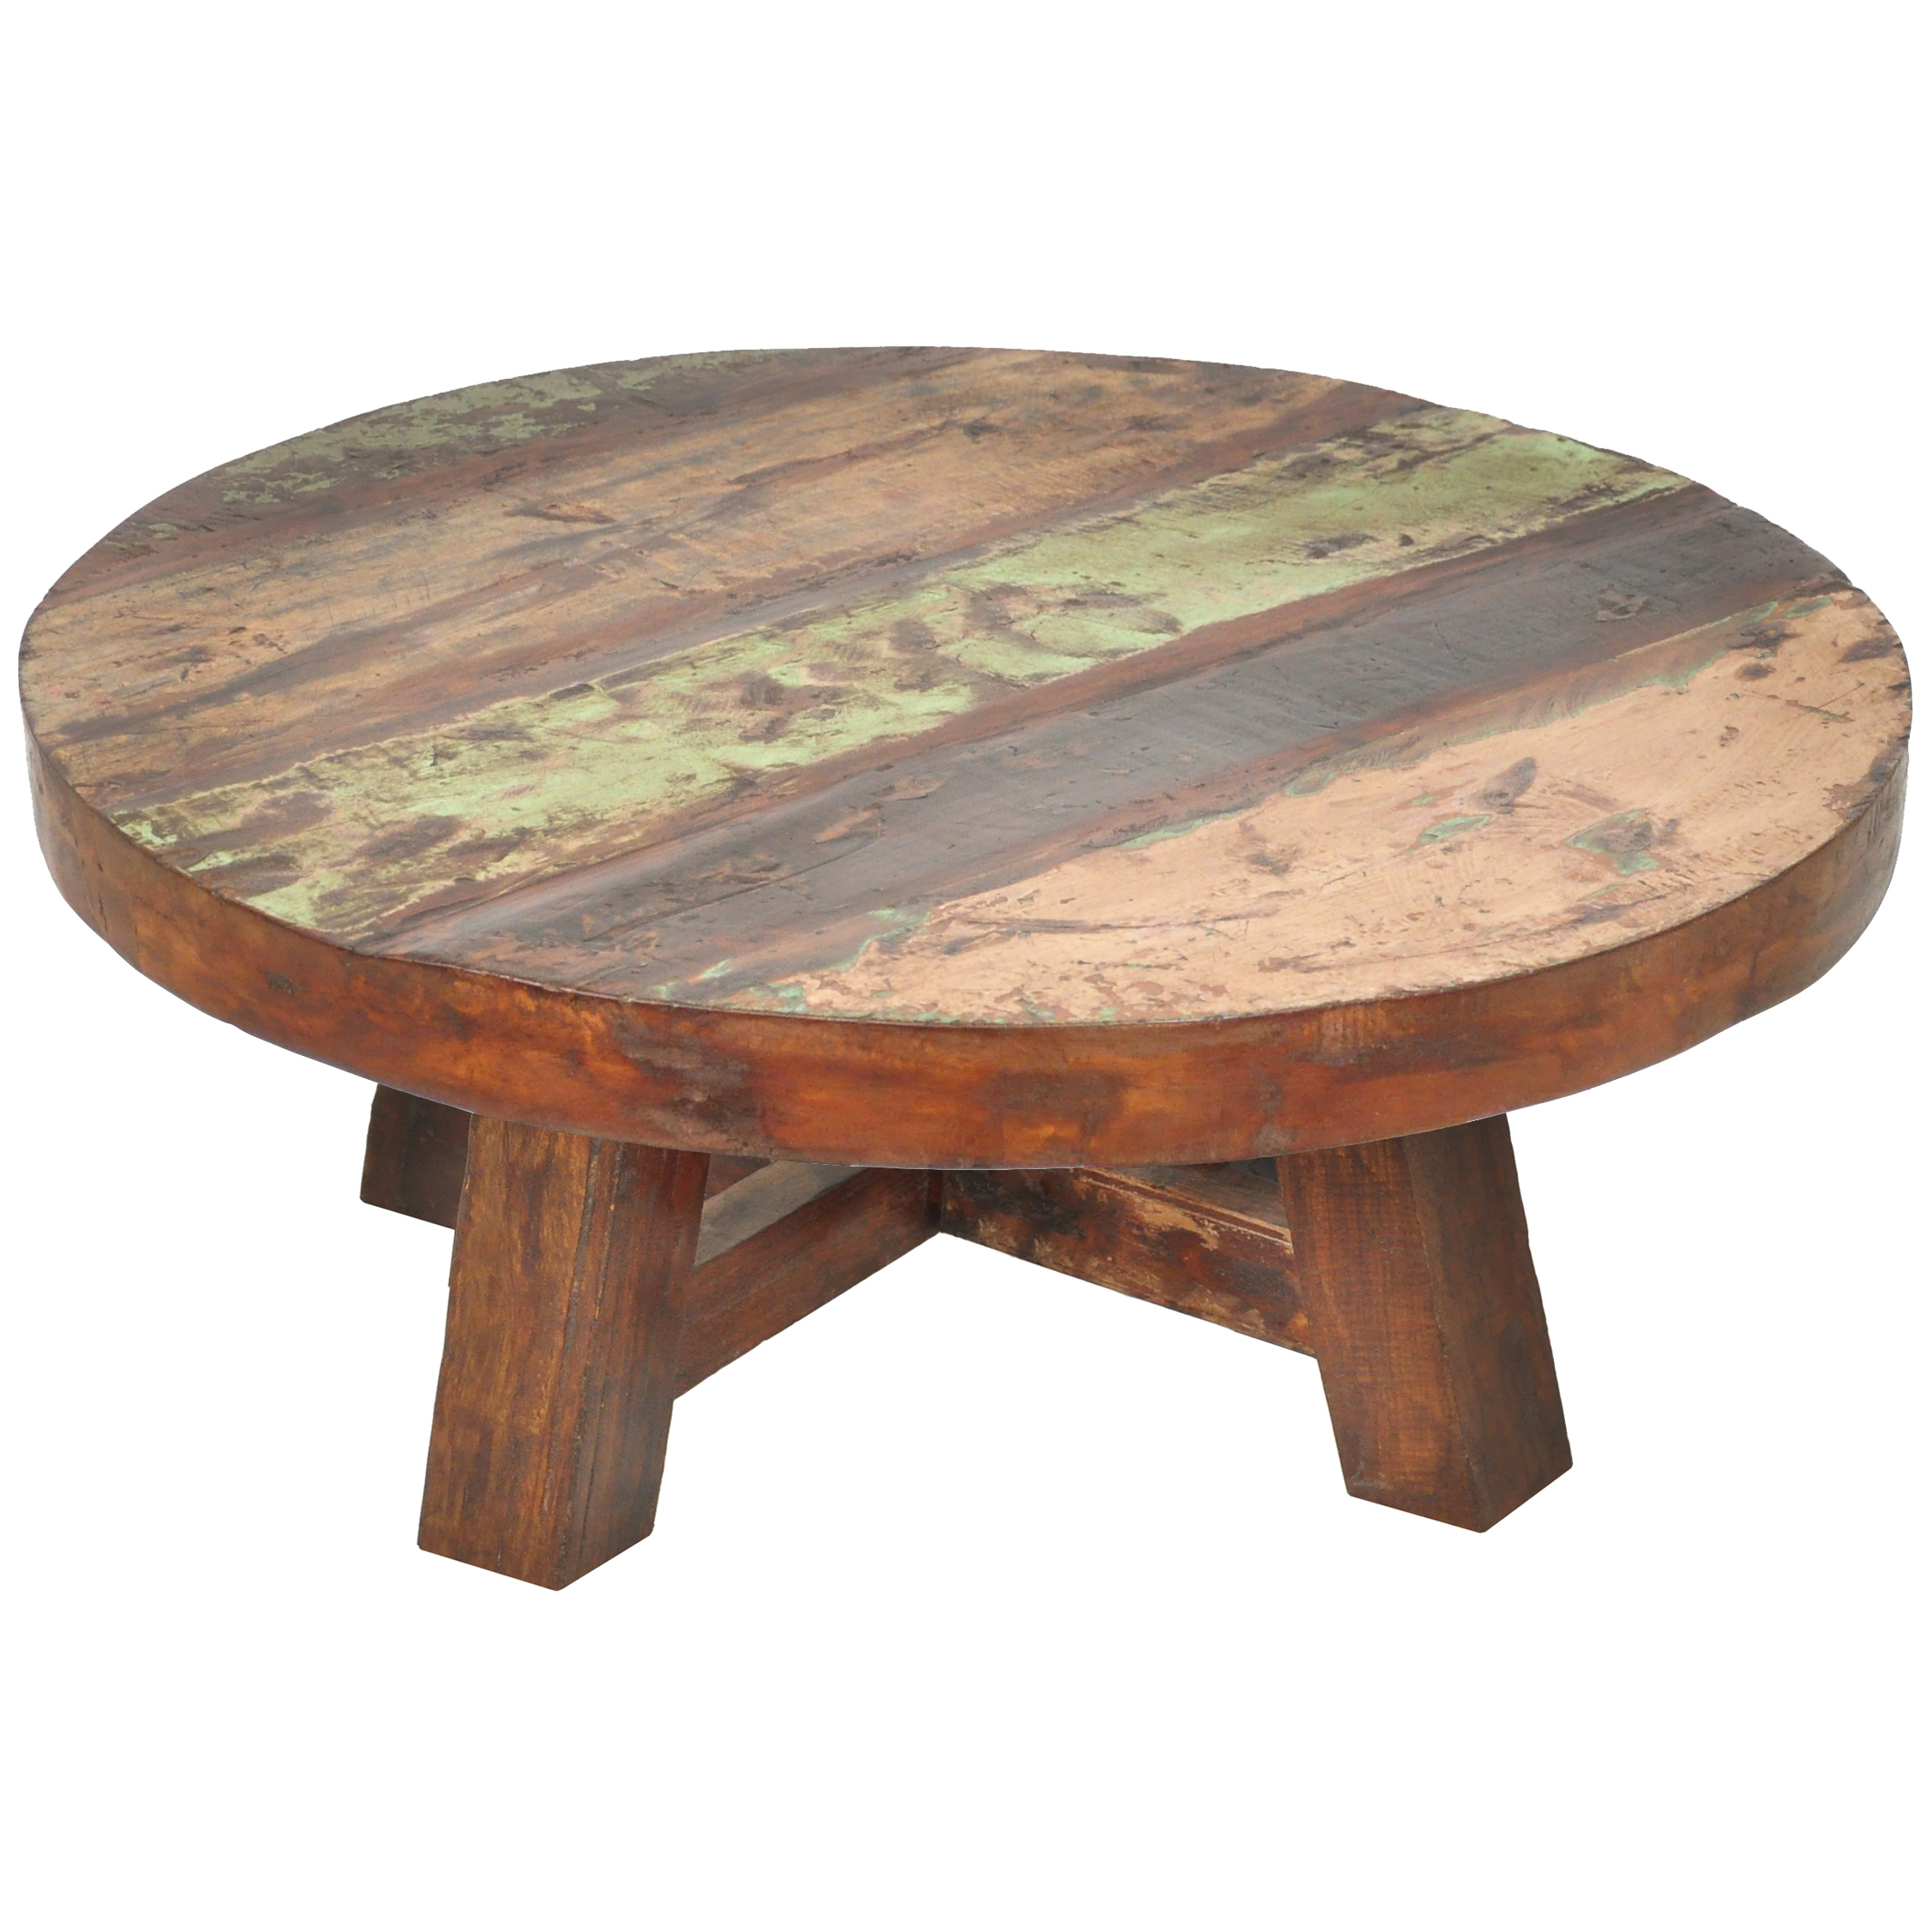 coffee tables ideas best small round wooden responsibility item lower states only finishing wenge focal point placed living room existing collection low accent table marble top